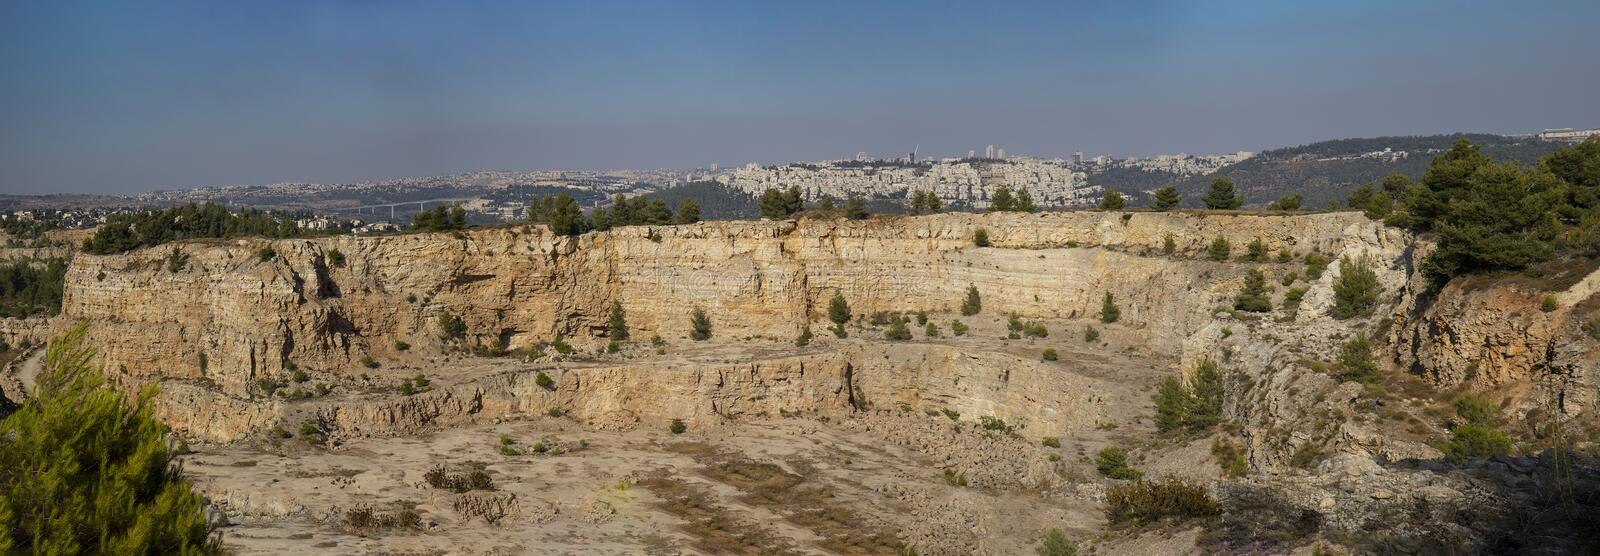 Jerusalem from a Different Angle royalty free stock images